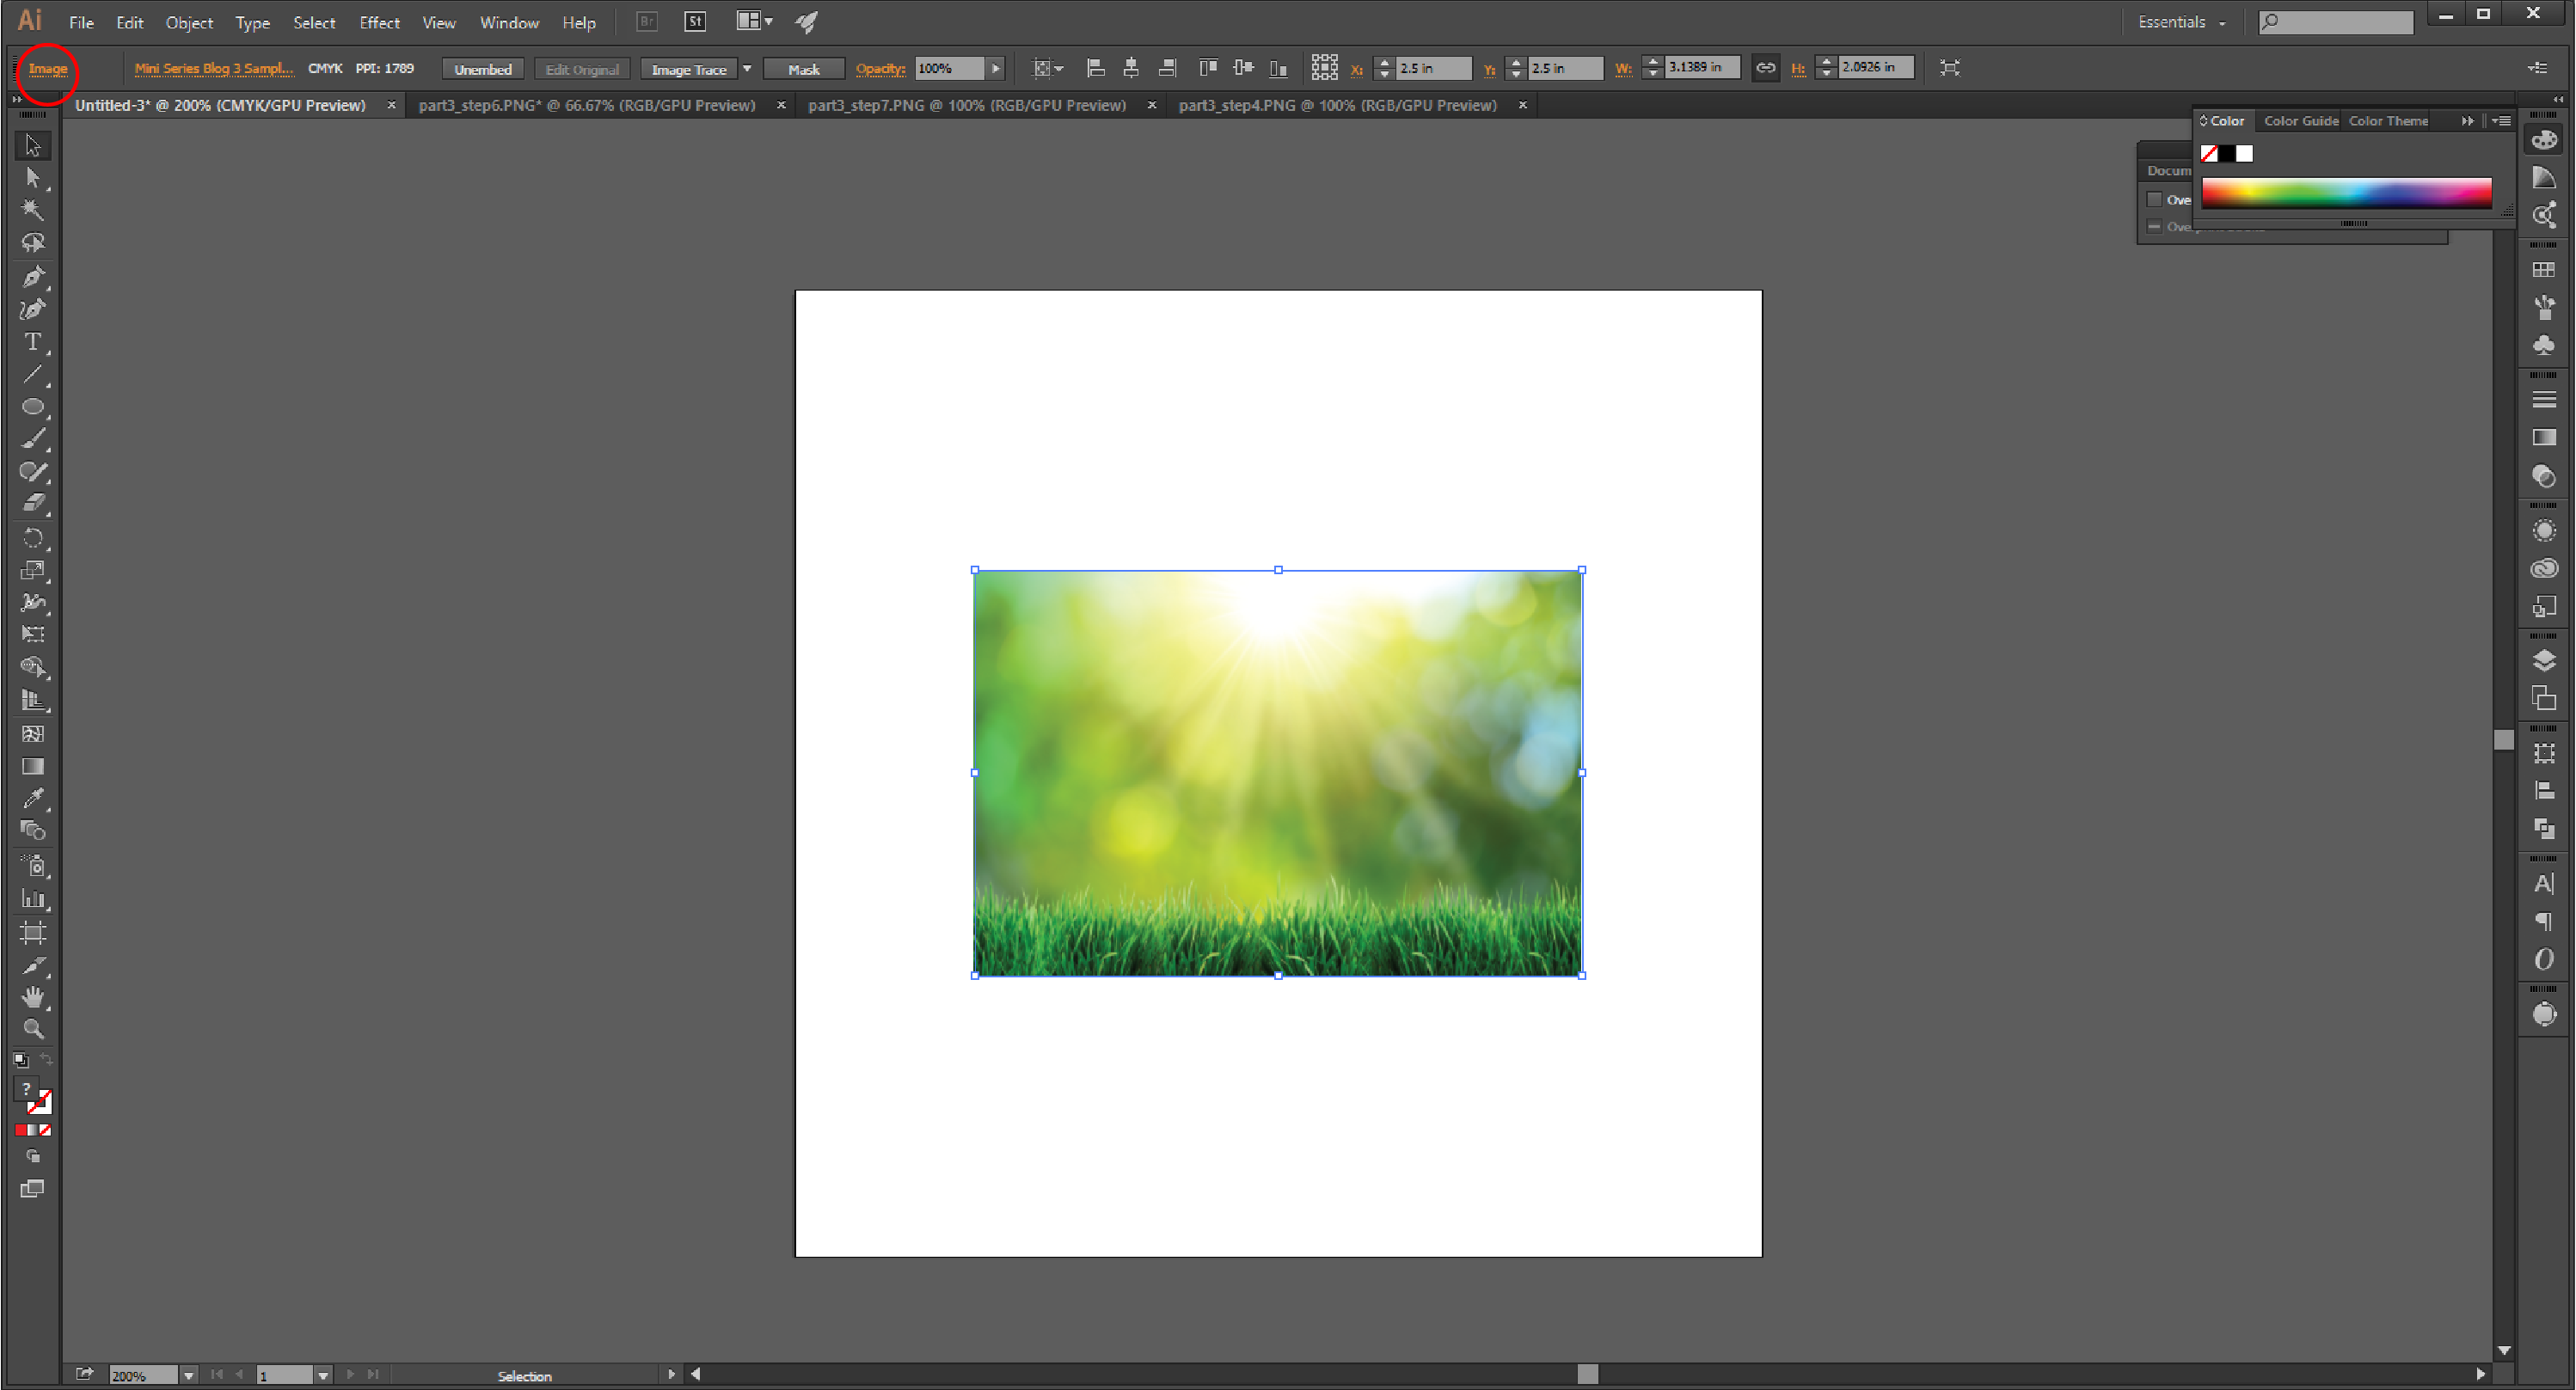 How to Embed an Image in Adobe Illustrator Step 5